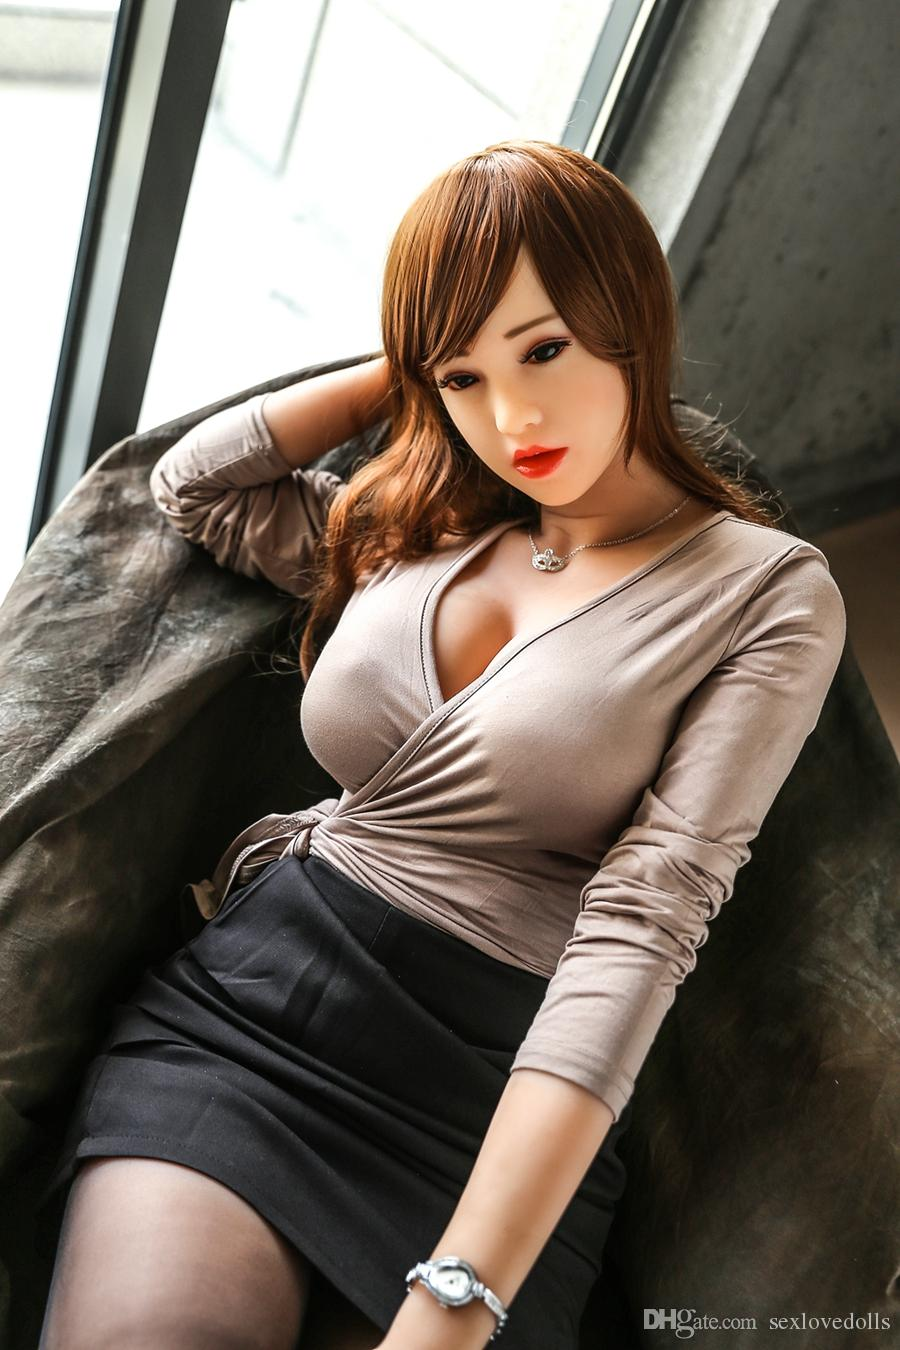 Adult doll video